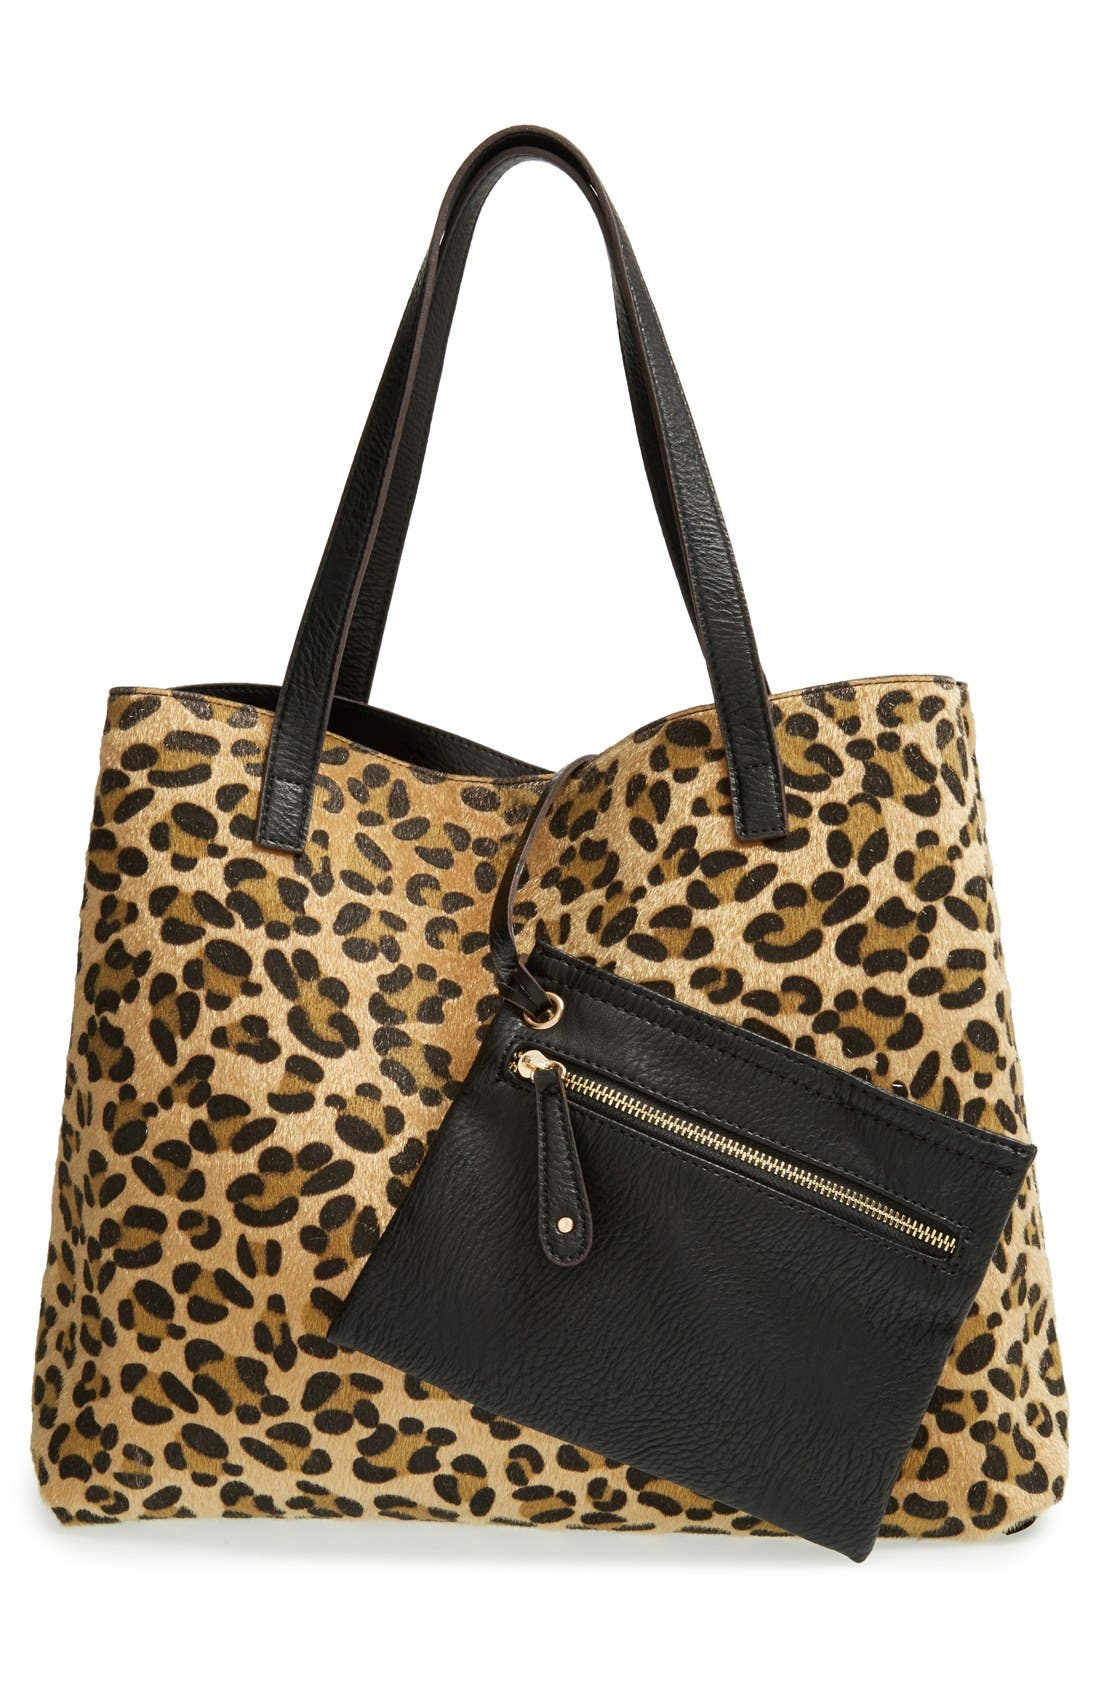 STREET LEVEL Reversible Faux Leather Tote, Main, color, 004